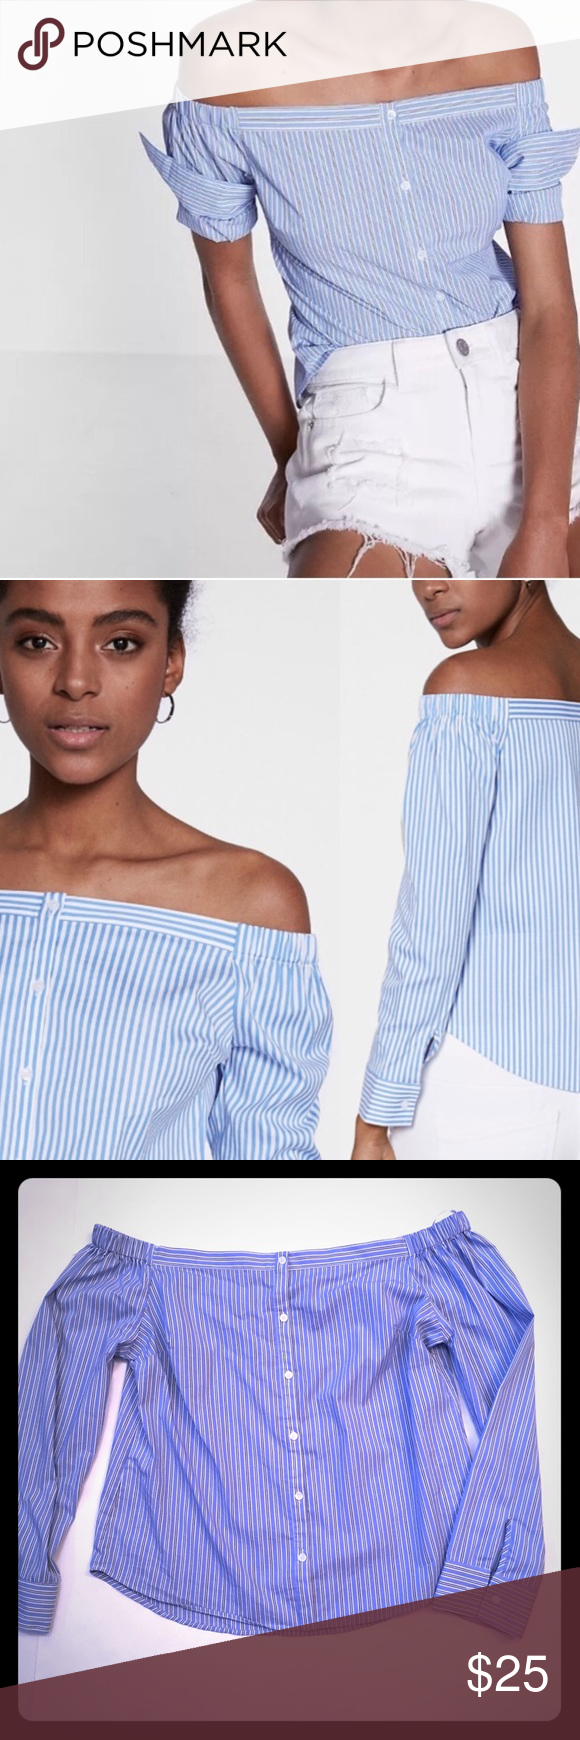 301f03b0ed2 Express | Striped off the shoulder blouse Express striped blue and white off  the shoulder long